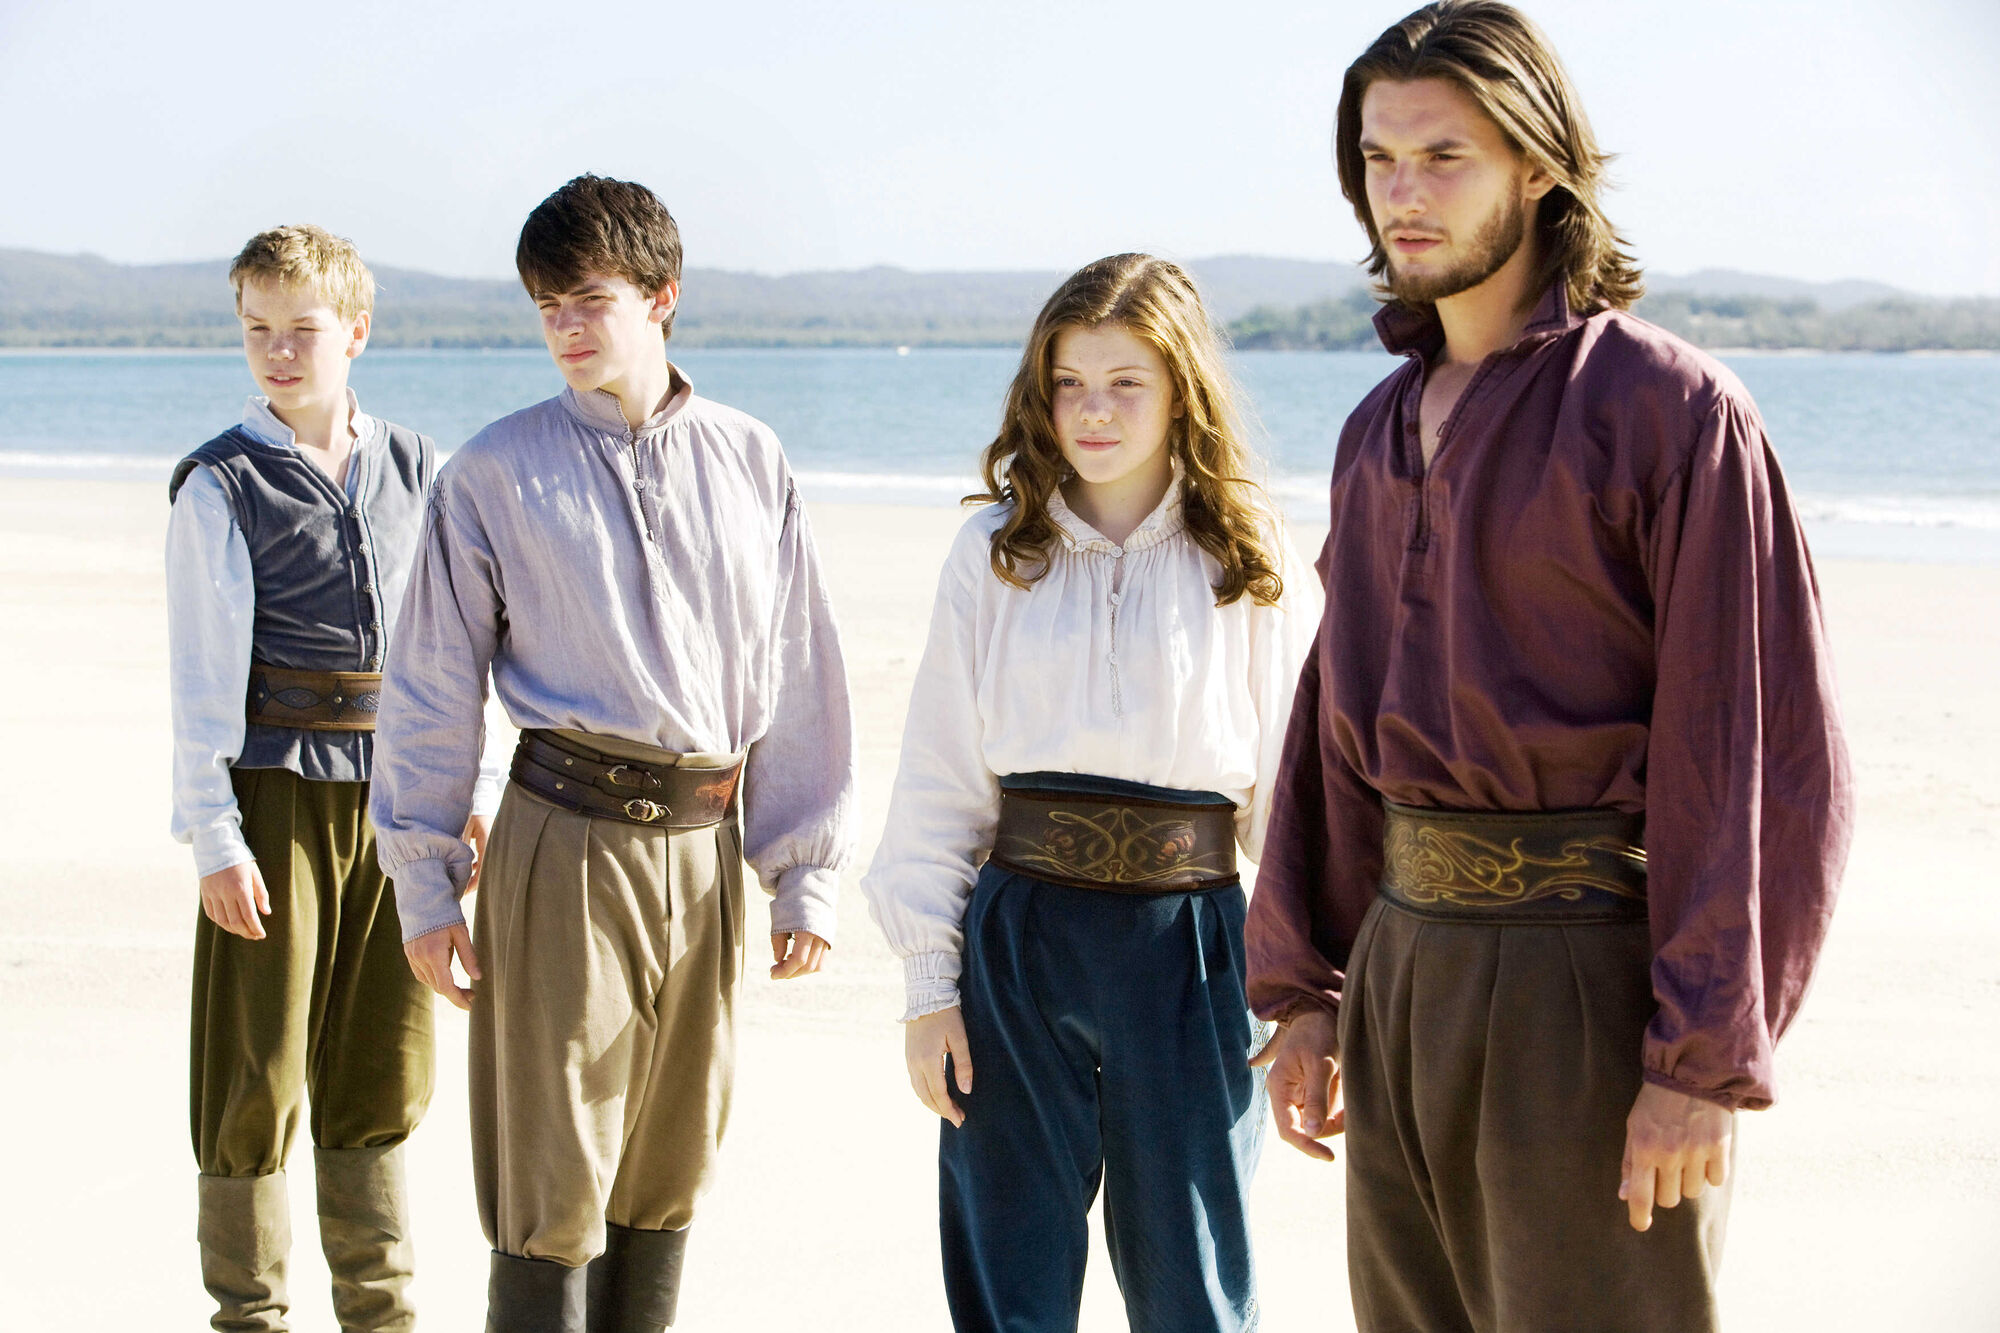 The Chronicles of Narnia The Voyage of the Dawn Treader - DVD Image